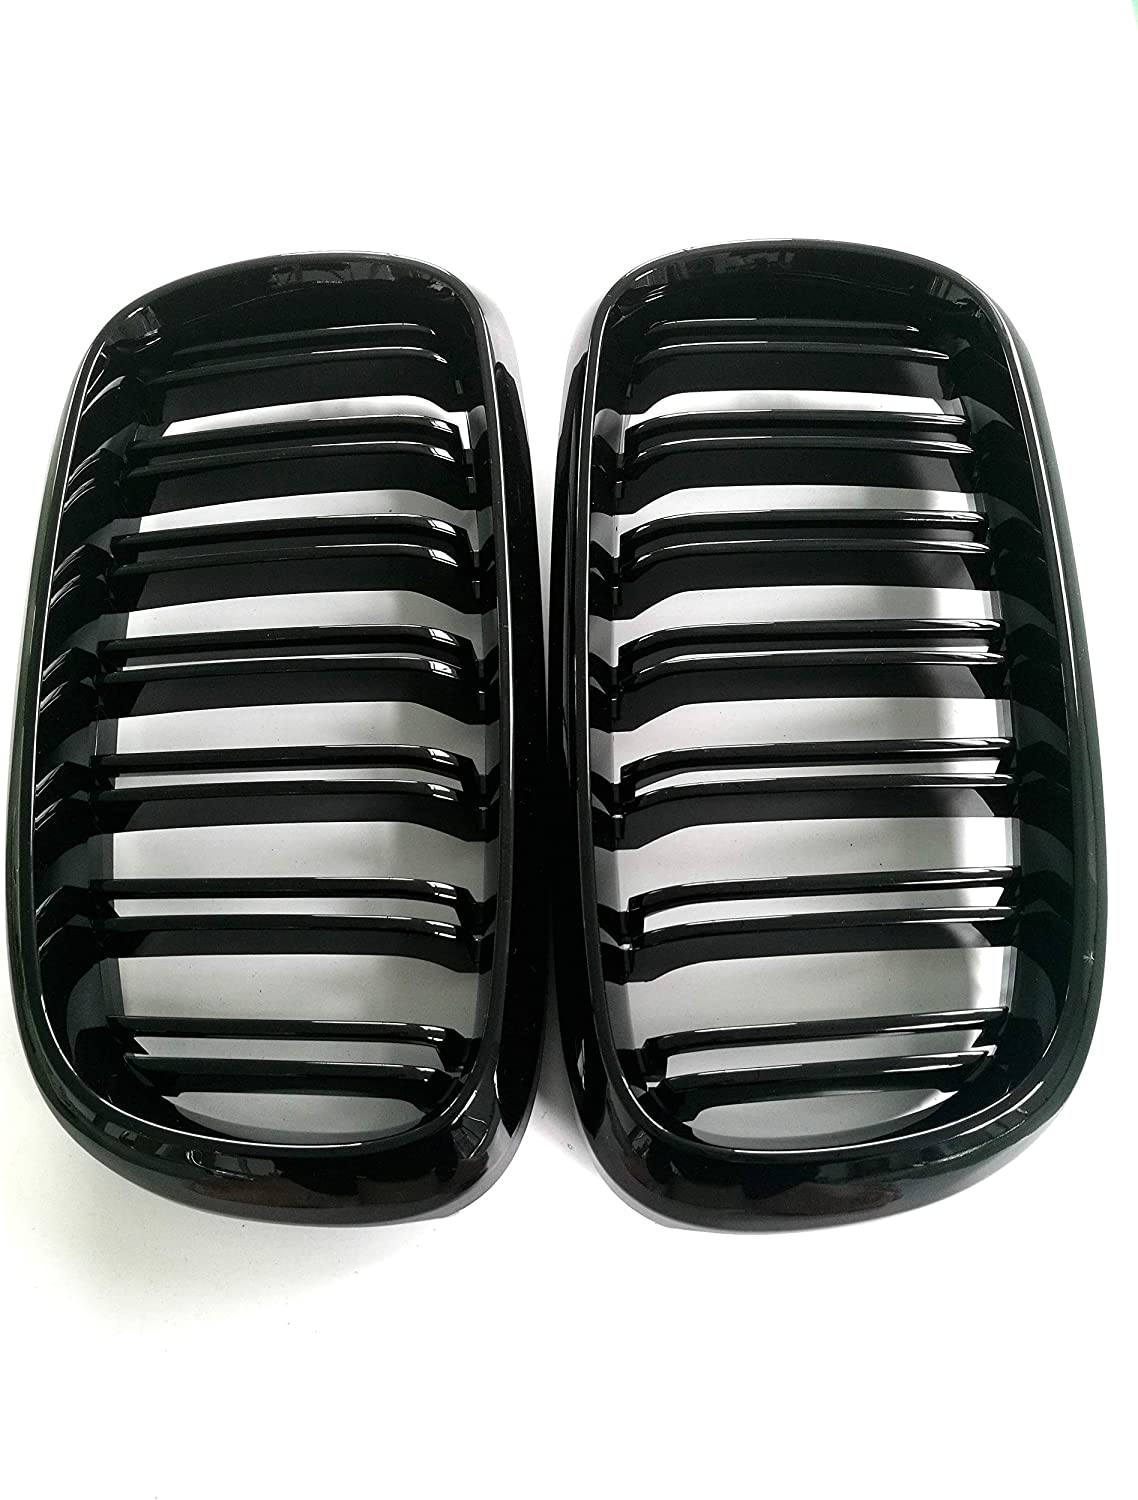 Zonsoon Front Replacement Kidney Grille 5%OFF with Grill 新作販売 BM Compatible